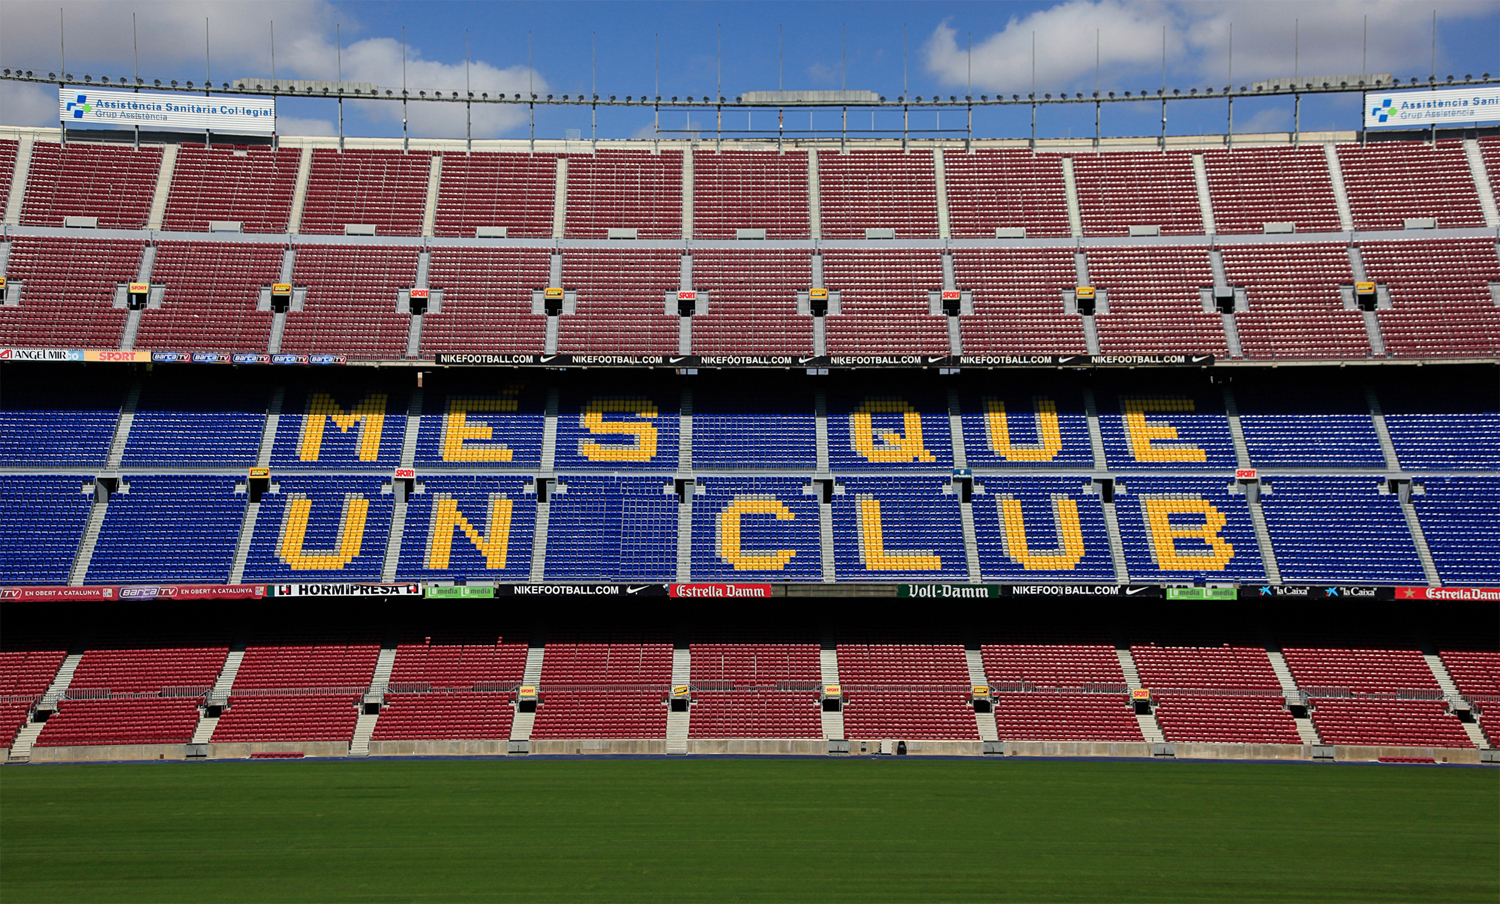 This is the original image which you can download here Camp Nou Day 1500x904